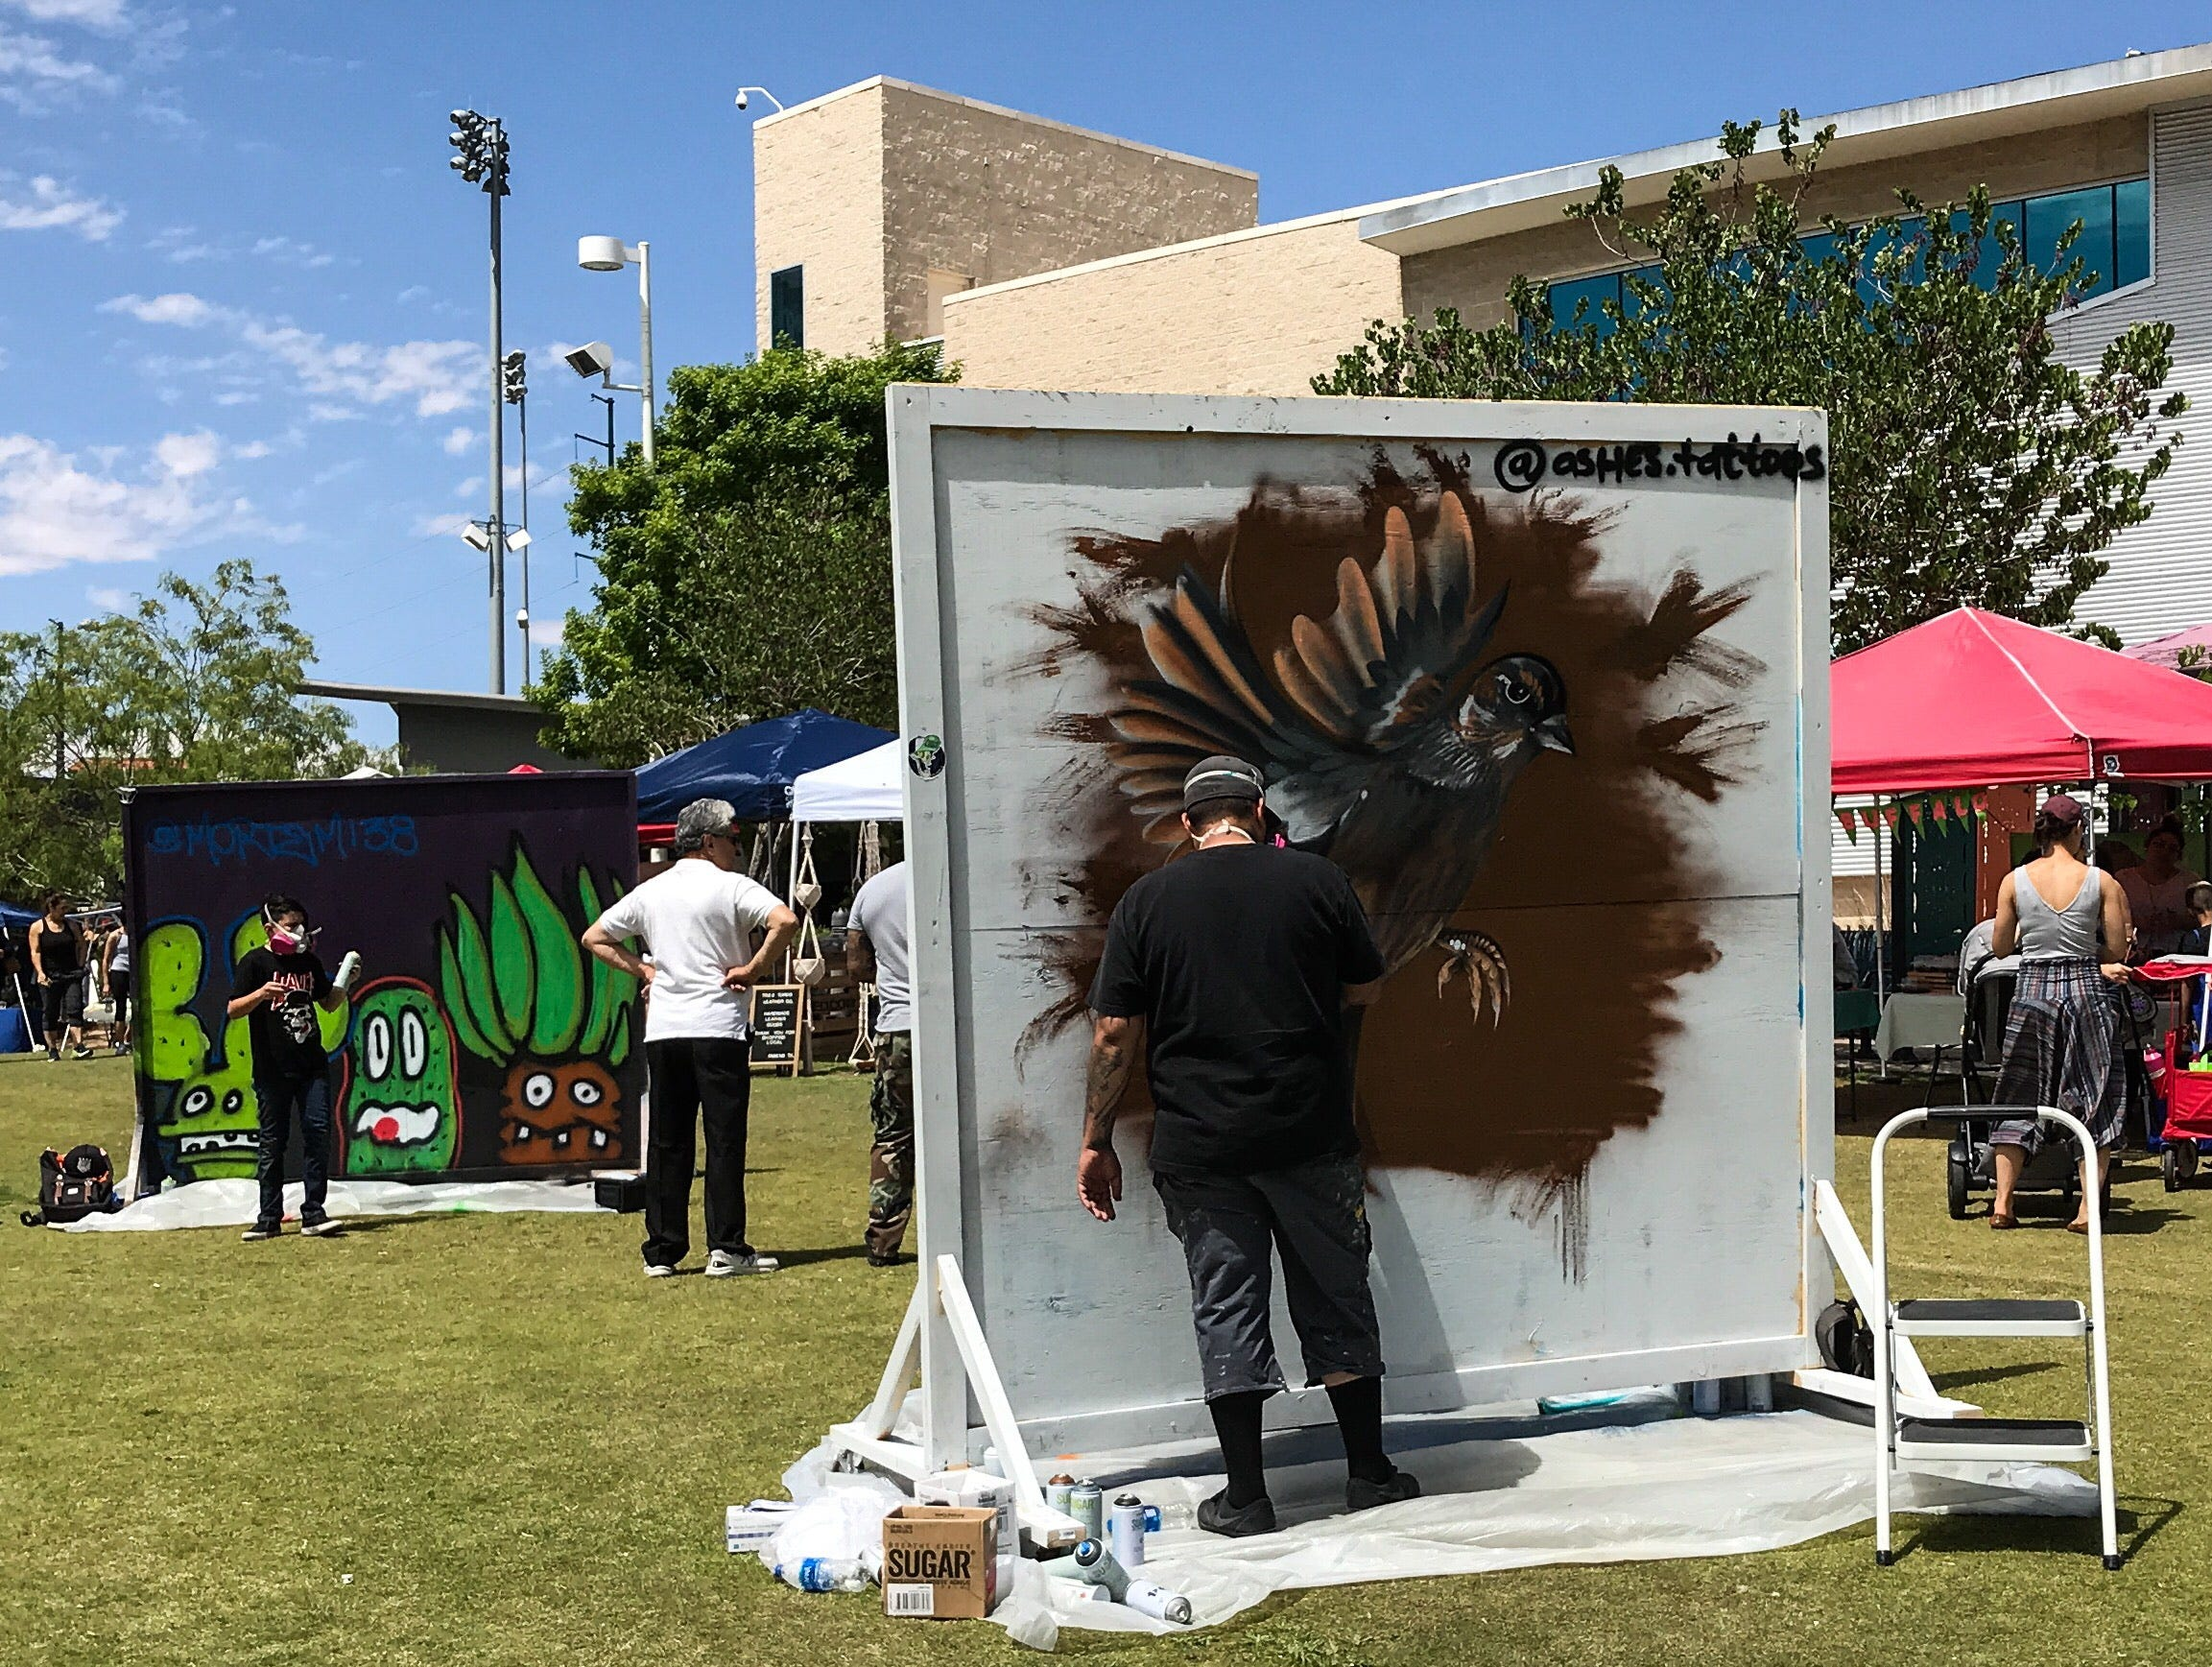 The weekly Downtown Art and Farmers Market was moved from Union Plaza to Cleveland Square Plaza outside the El Paso Museum of History as part of the Earth Day celebration. The city of El Paso's Environmental Services Department held the event Saturday, April 20, 2019.